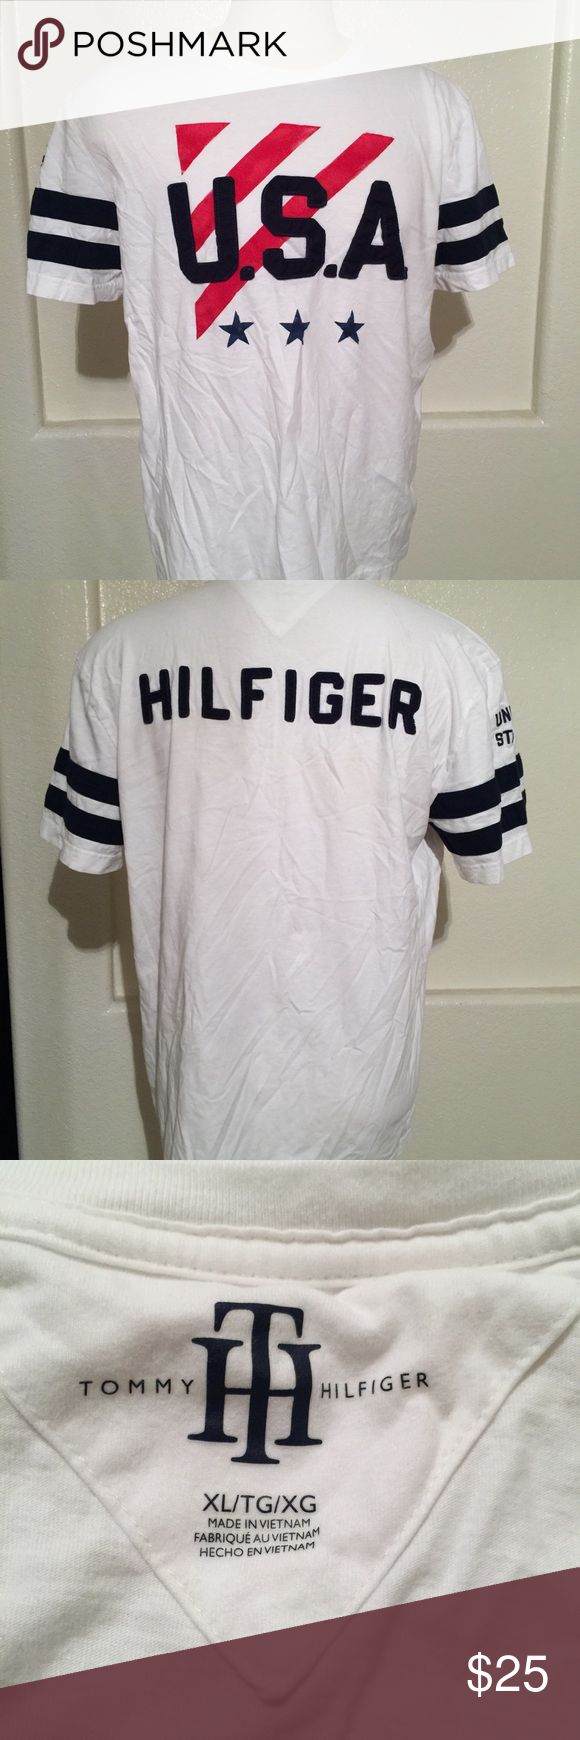 Men's Tommy Hilfiger USA TShirt XL New without tags. Men's size XL. Tommy Hilfiger Shirts Tees - Short Sleeve